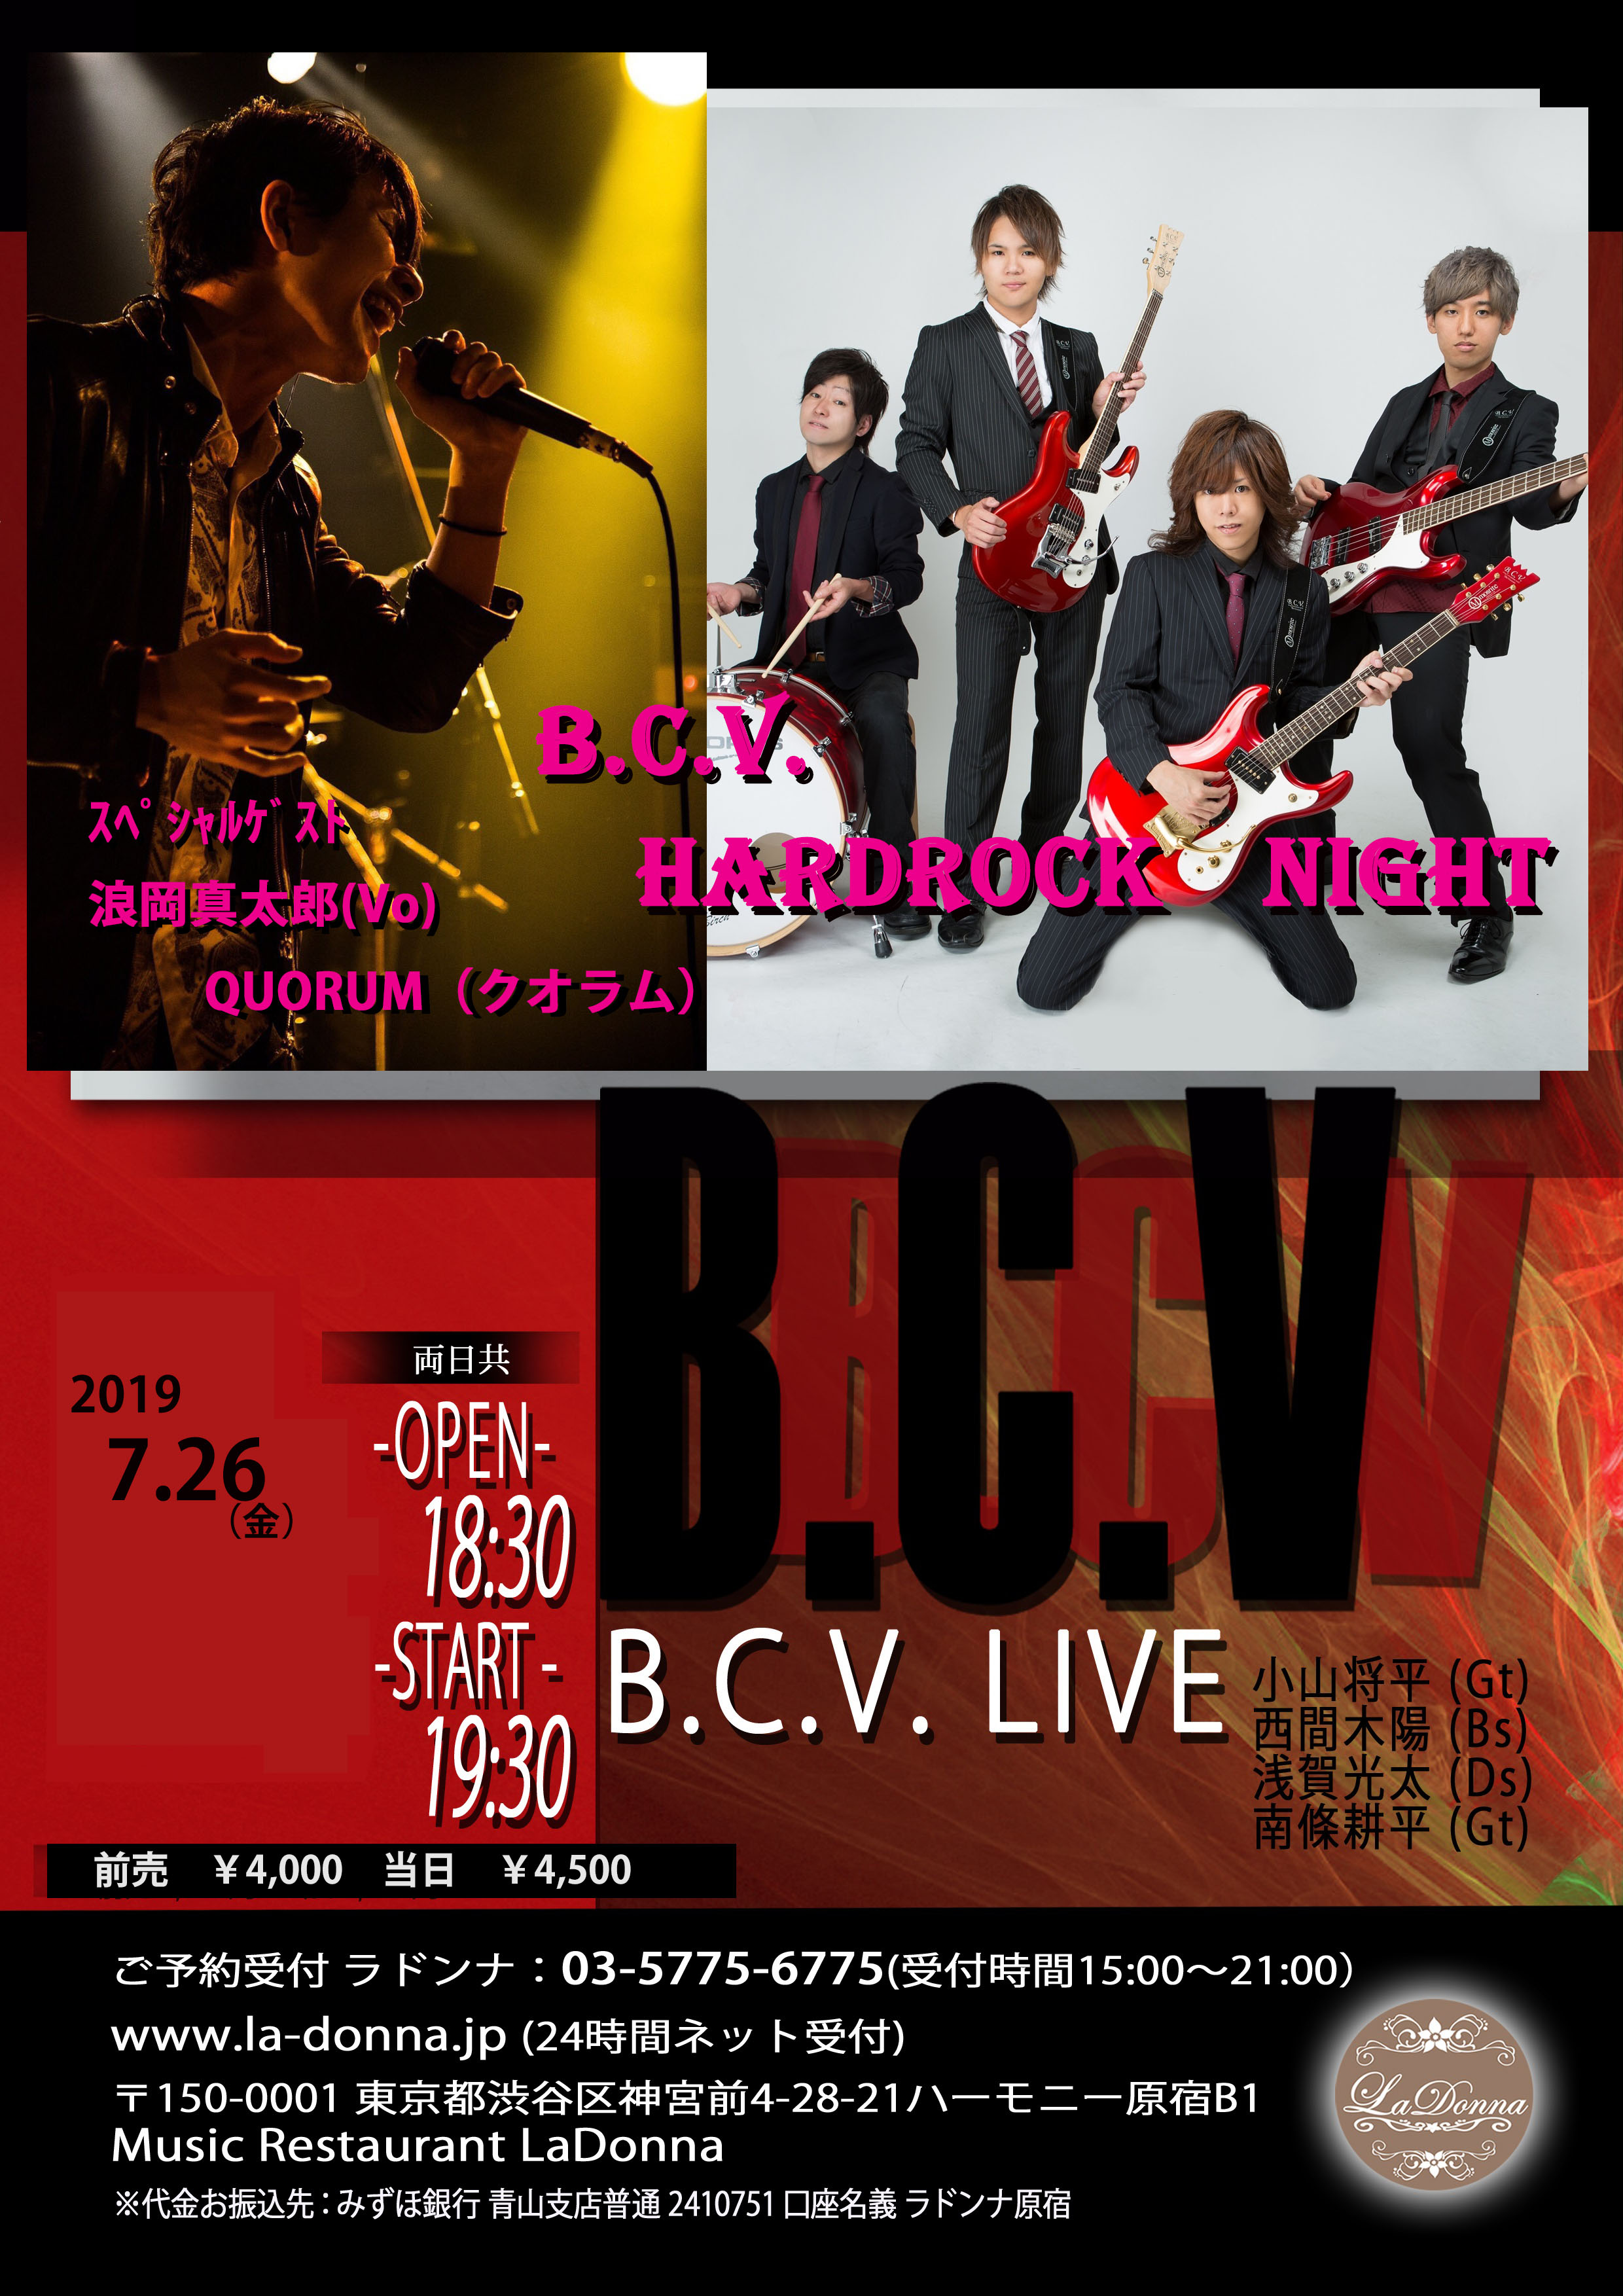 B.C.V. HARD ROCK NIGHT